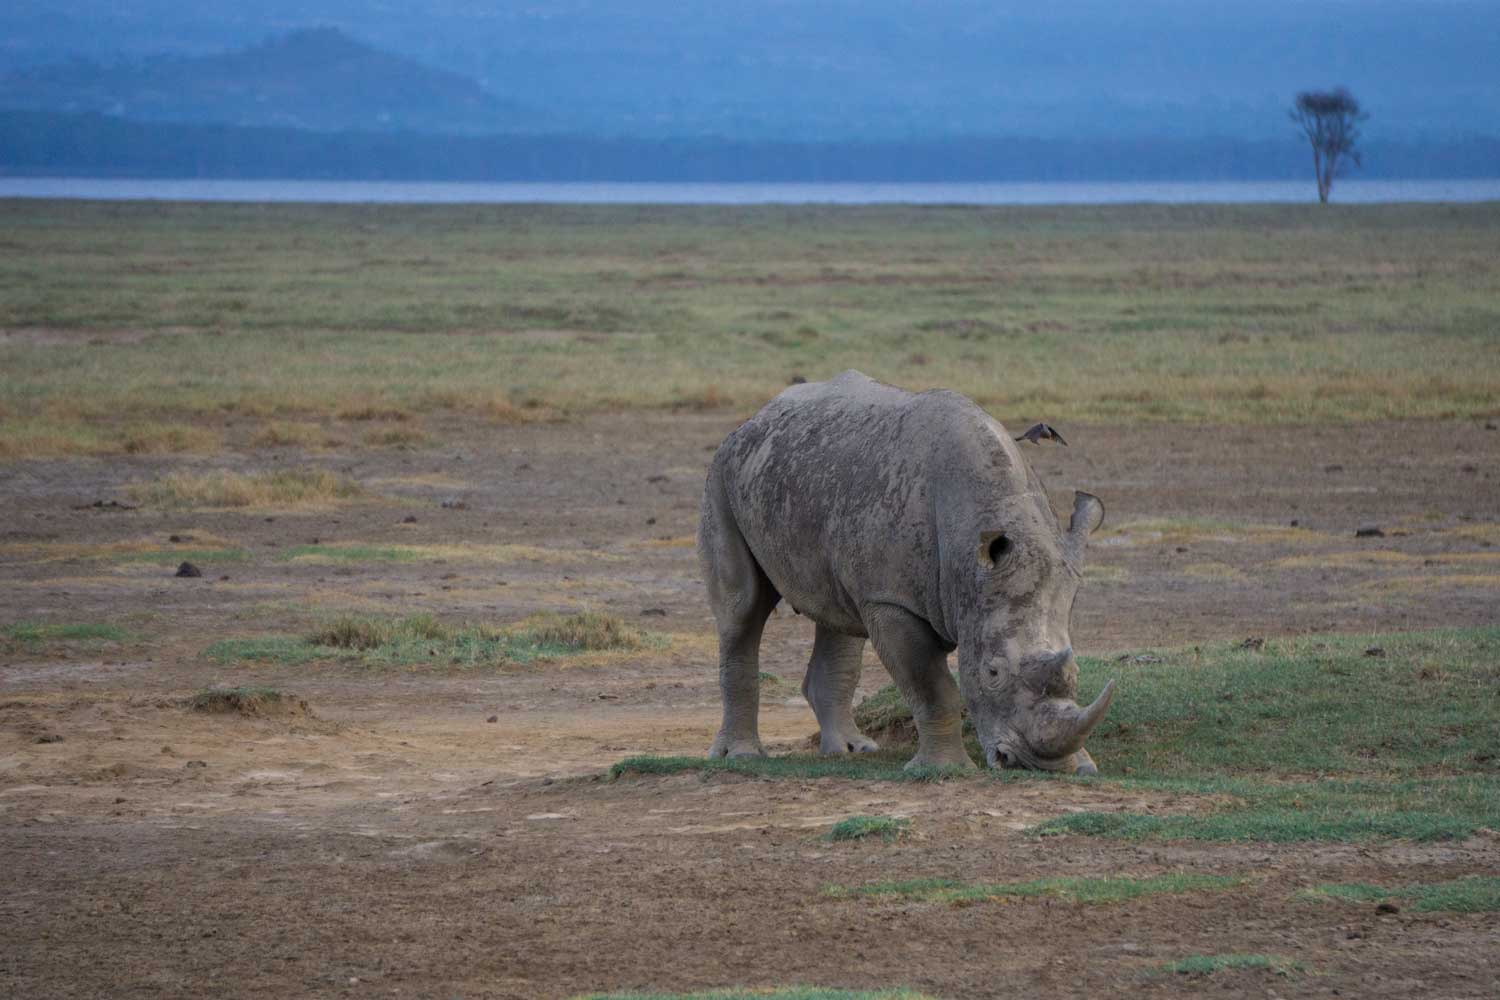 Safari in Kenya - Rhino